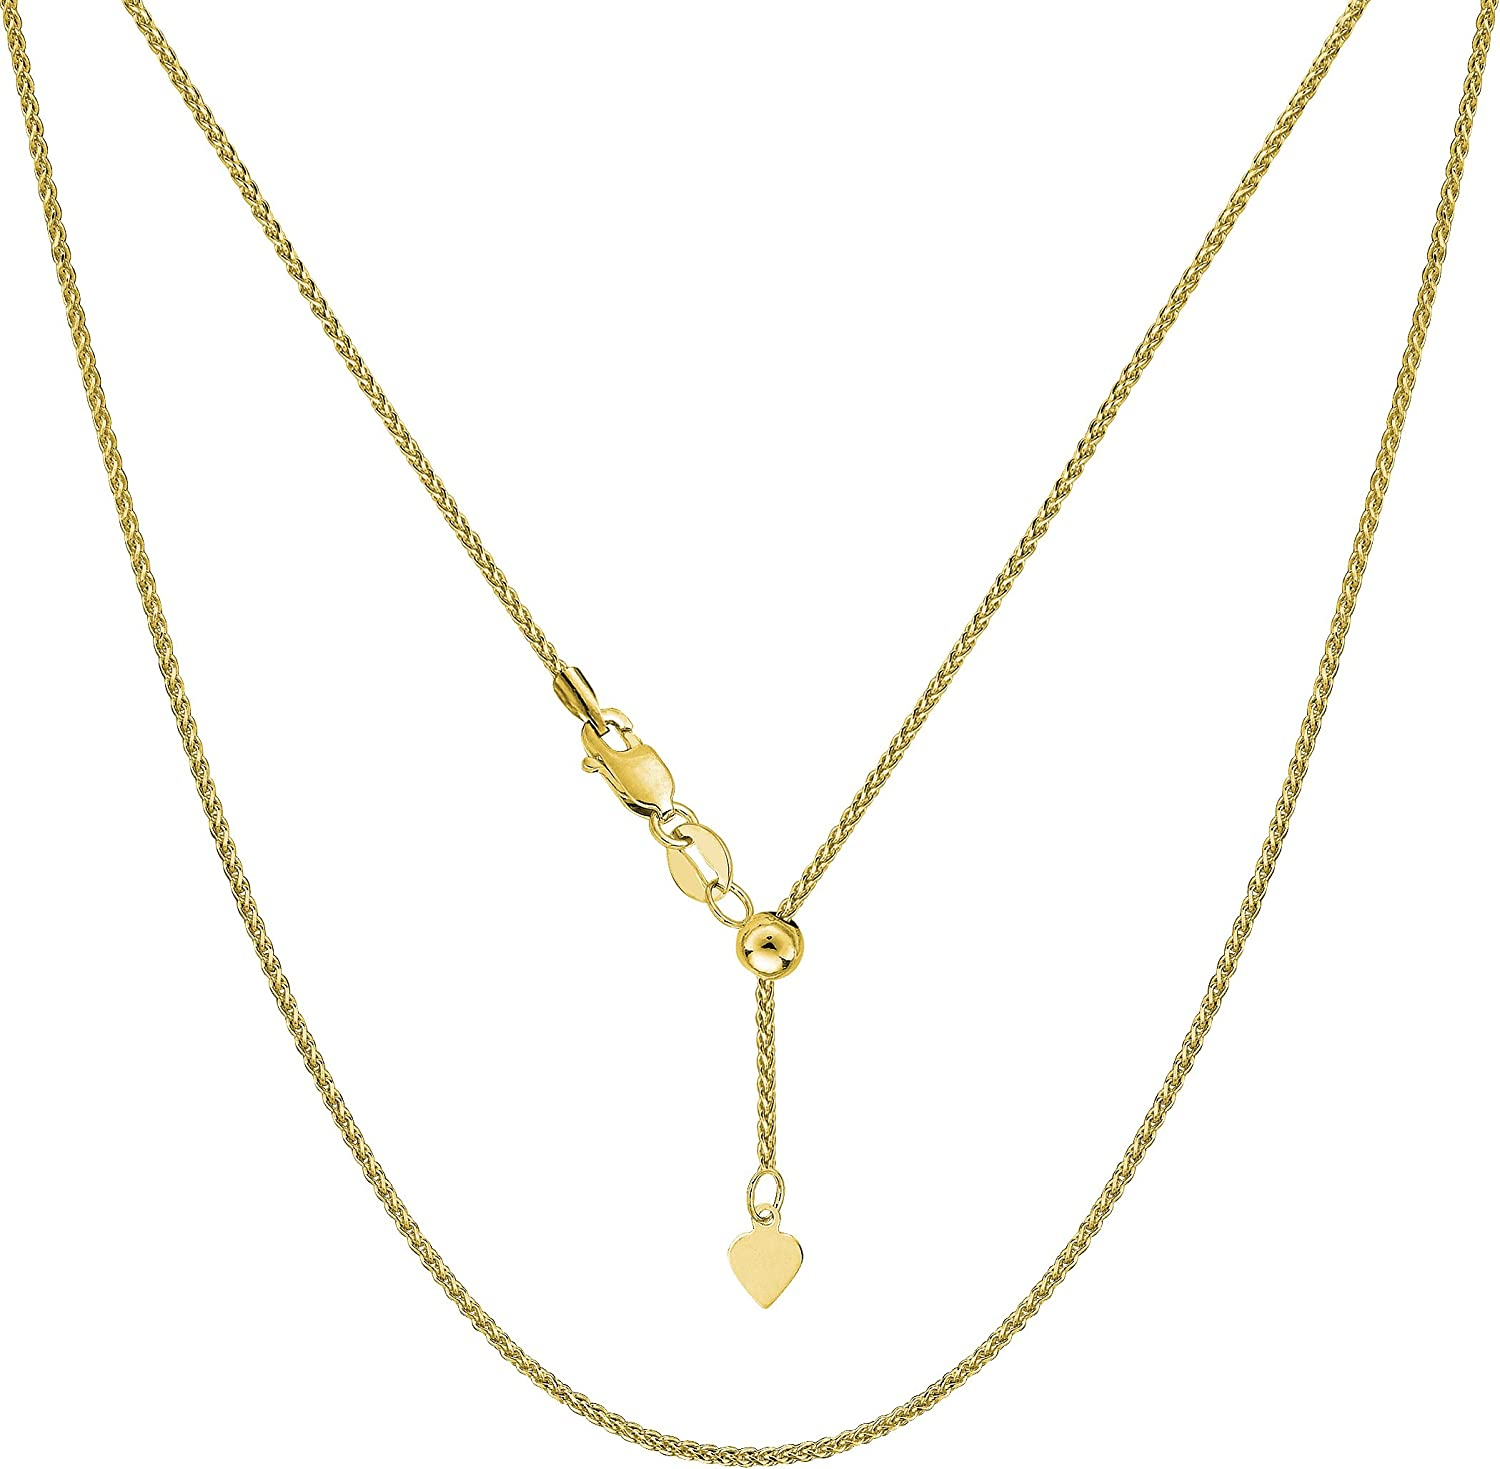 10k Yellow Gold Adjustable We OFFer at cheap prices Wheat Link 1.0mm Chain Necklace Minneapolis Mall 22